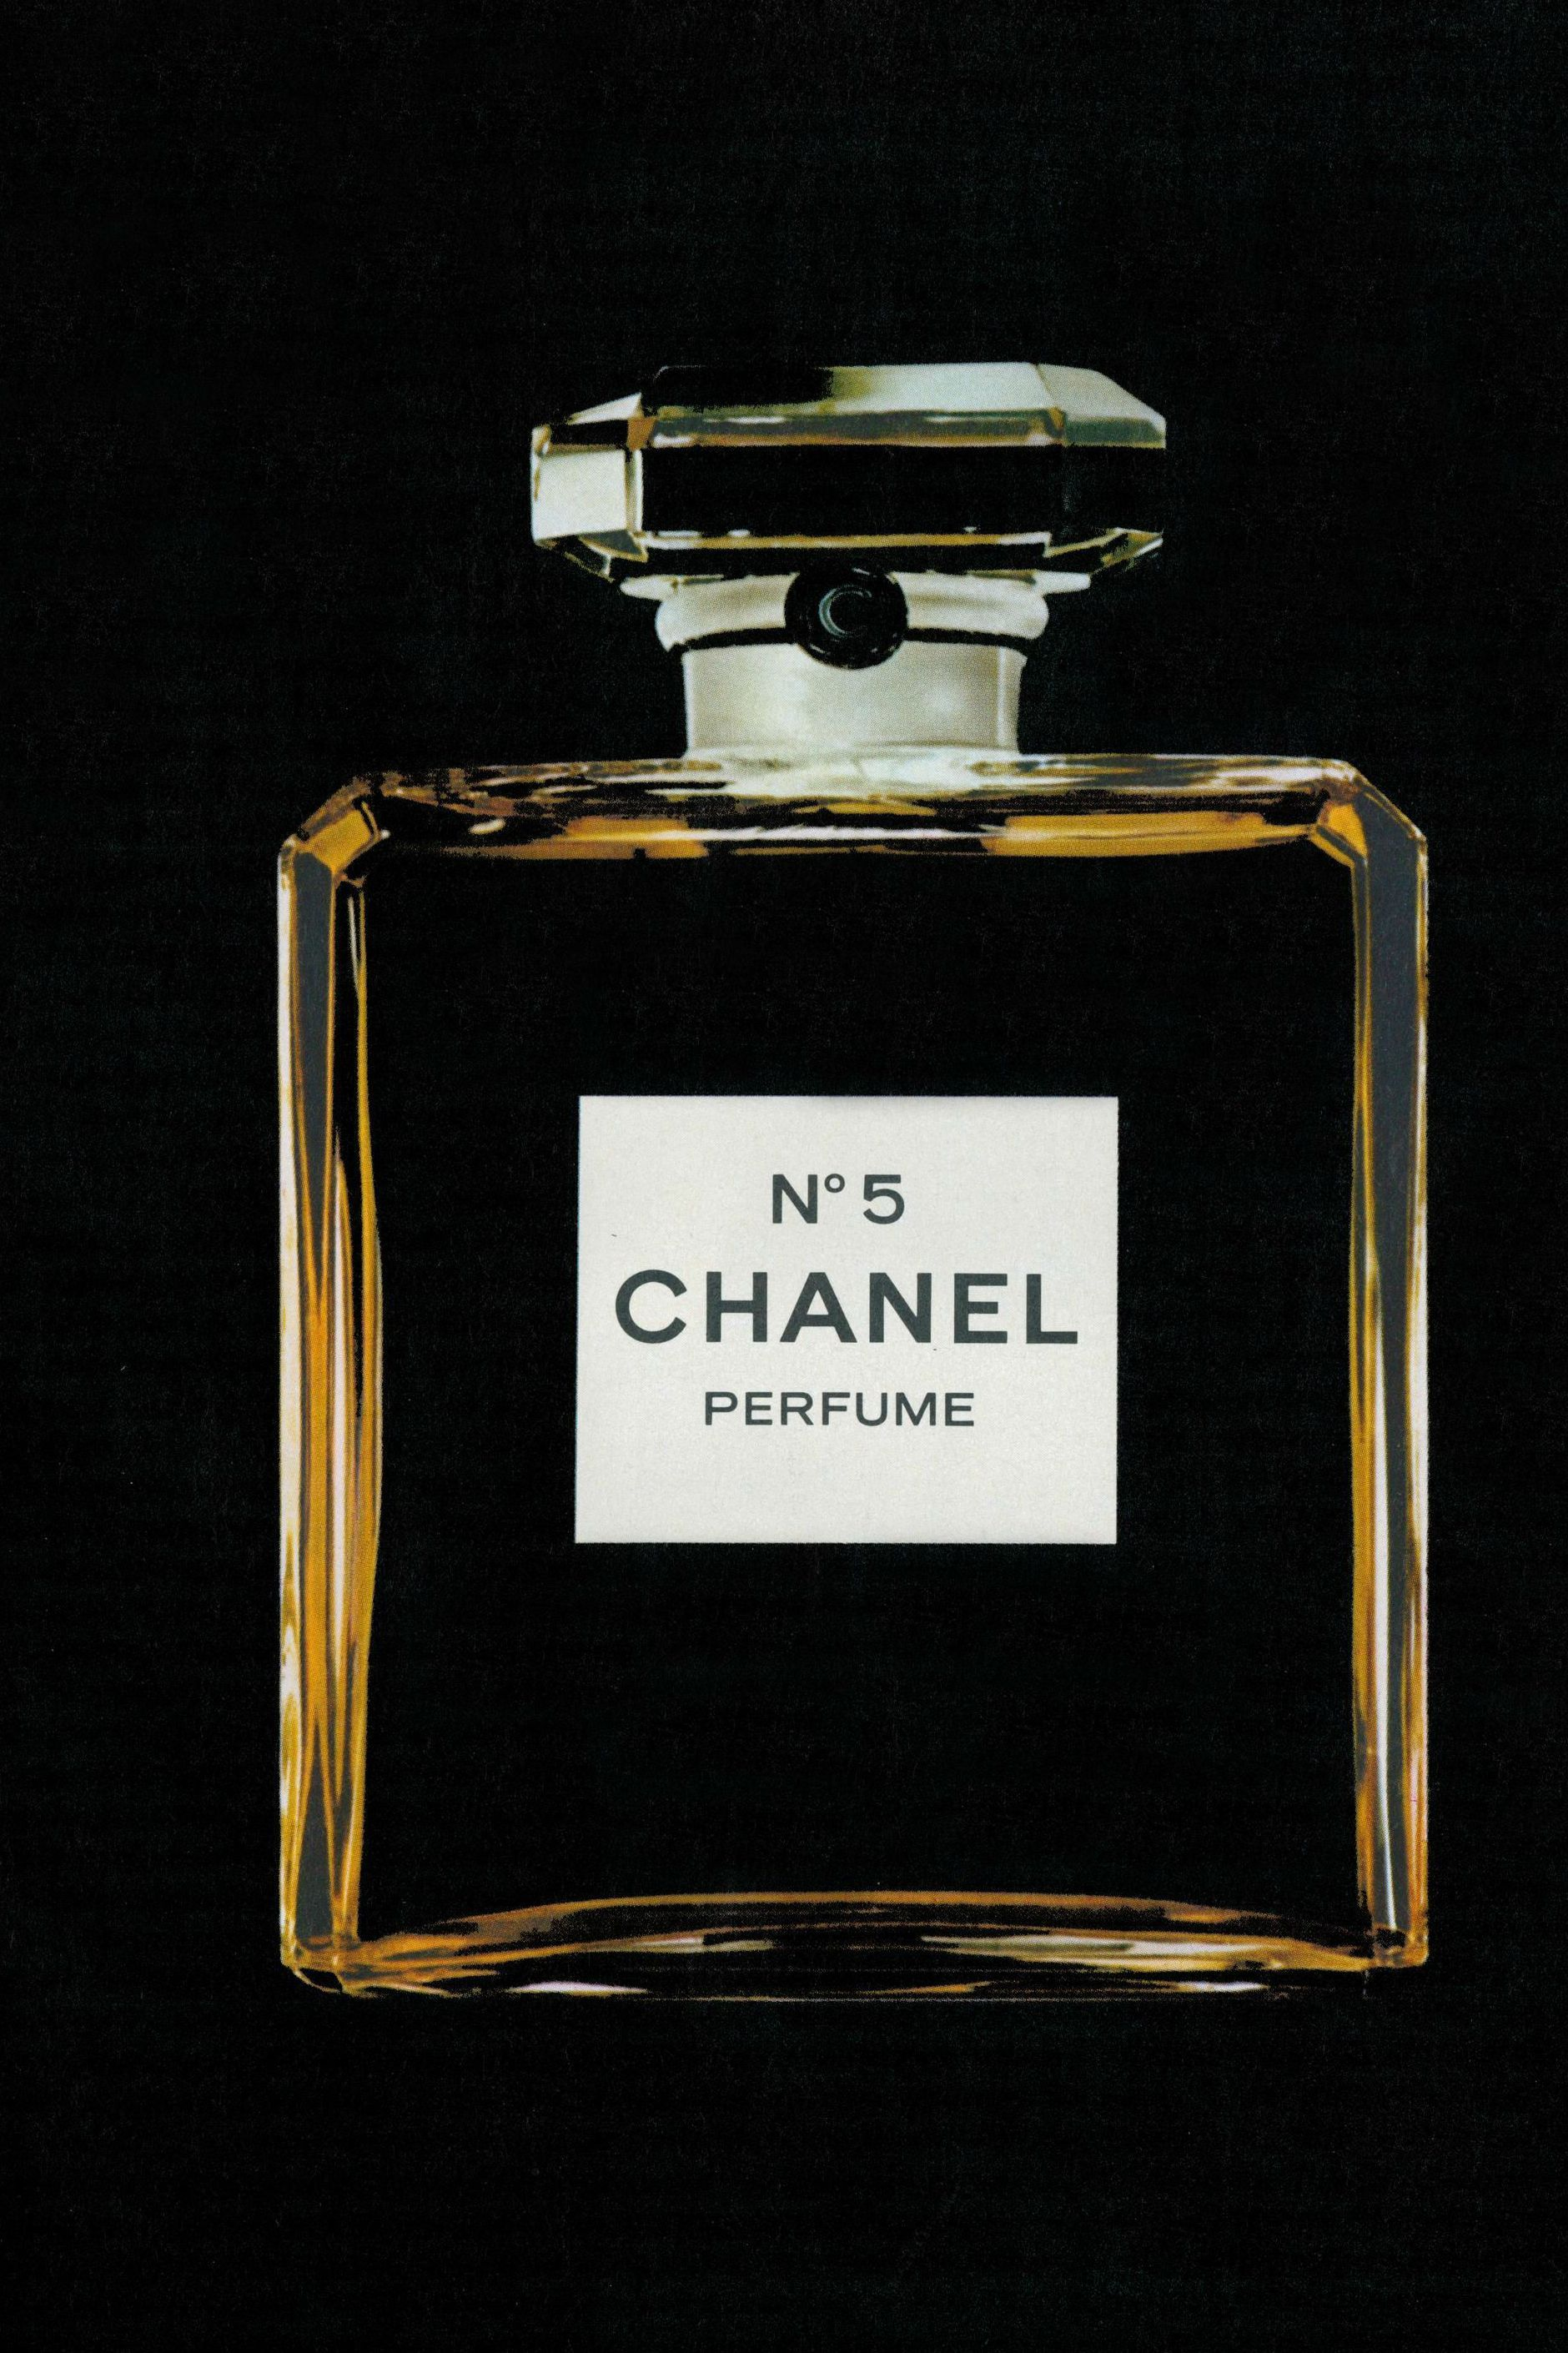 Chanel No 5 Perfume Introduced In 1921 By French Fashion Designer Coco Chanel The Eponymous Chanel No 5 Parfum Cont Perfume Chanel Perfume Perfume Bottles